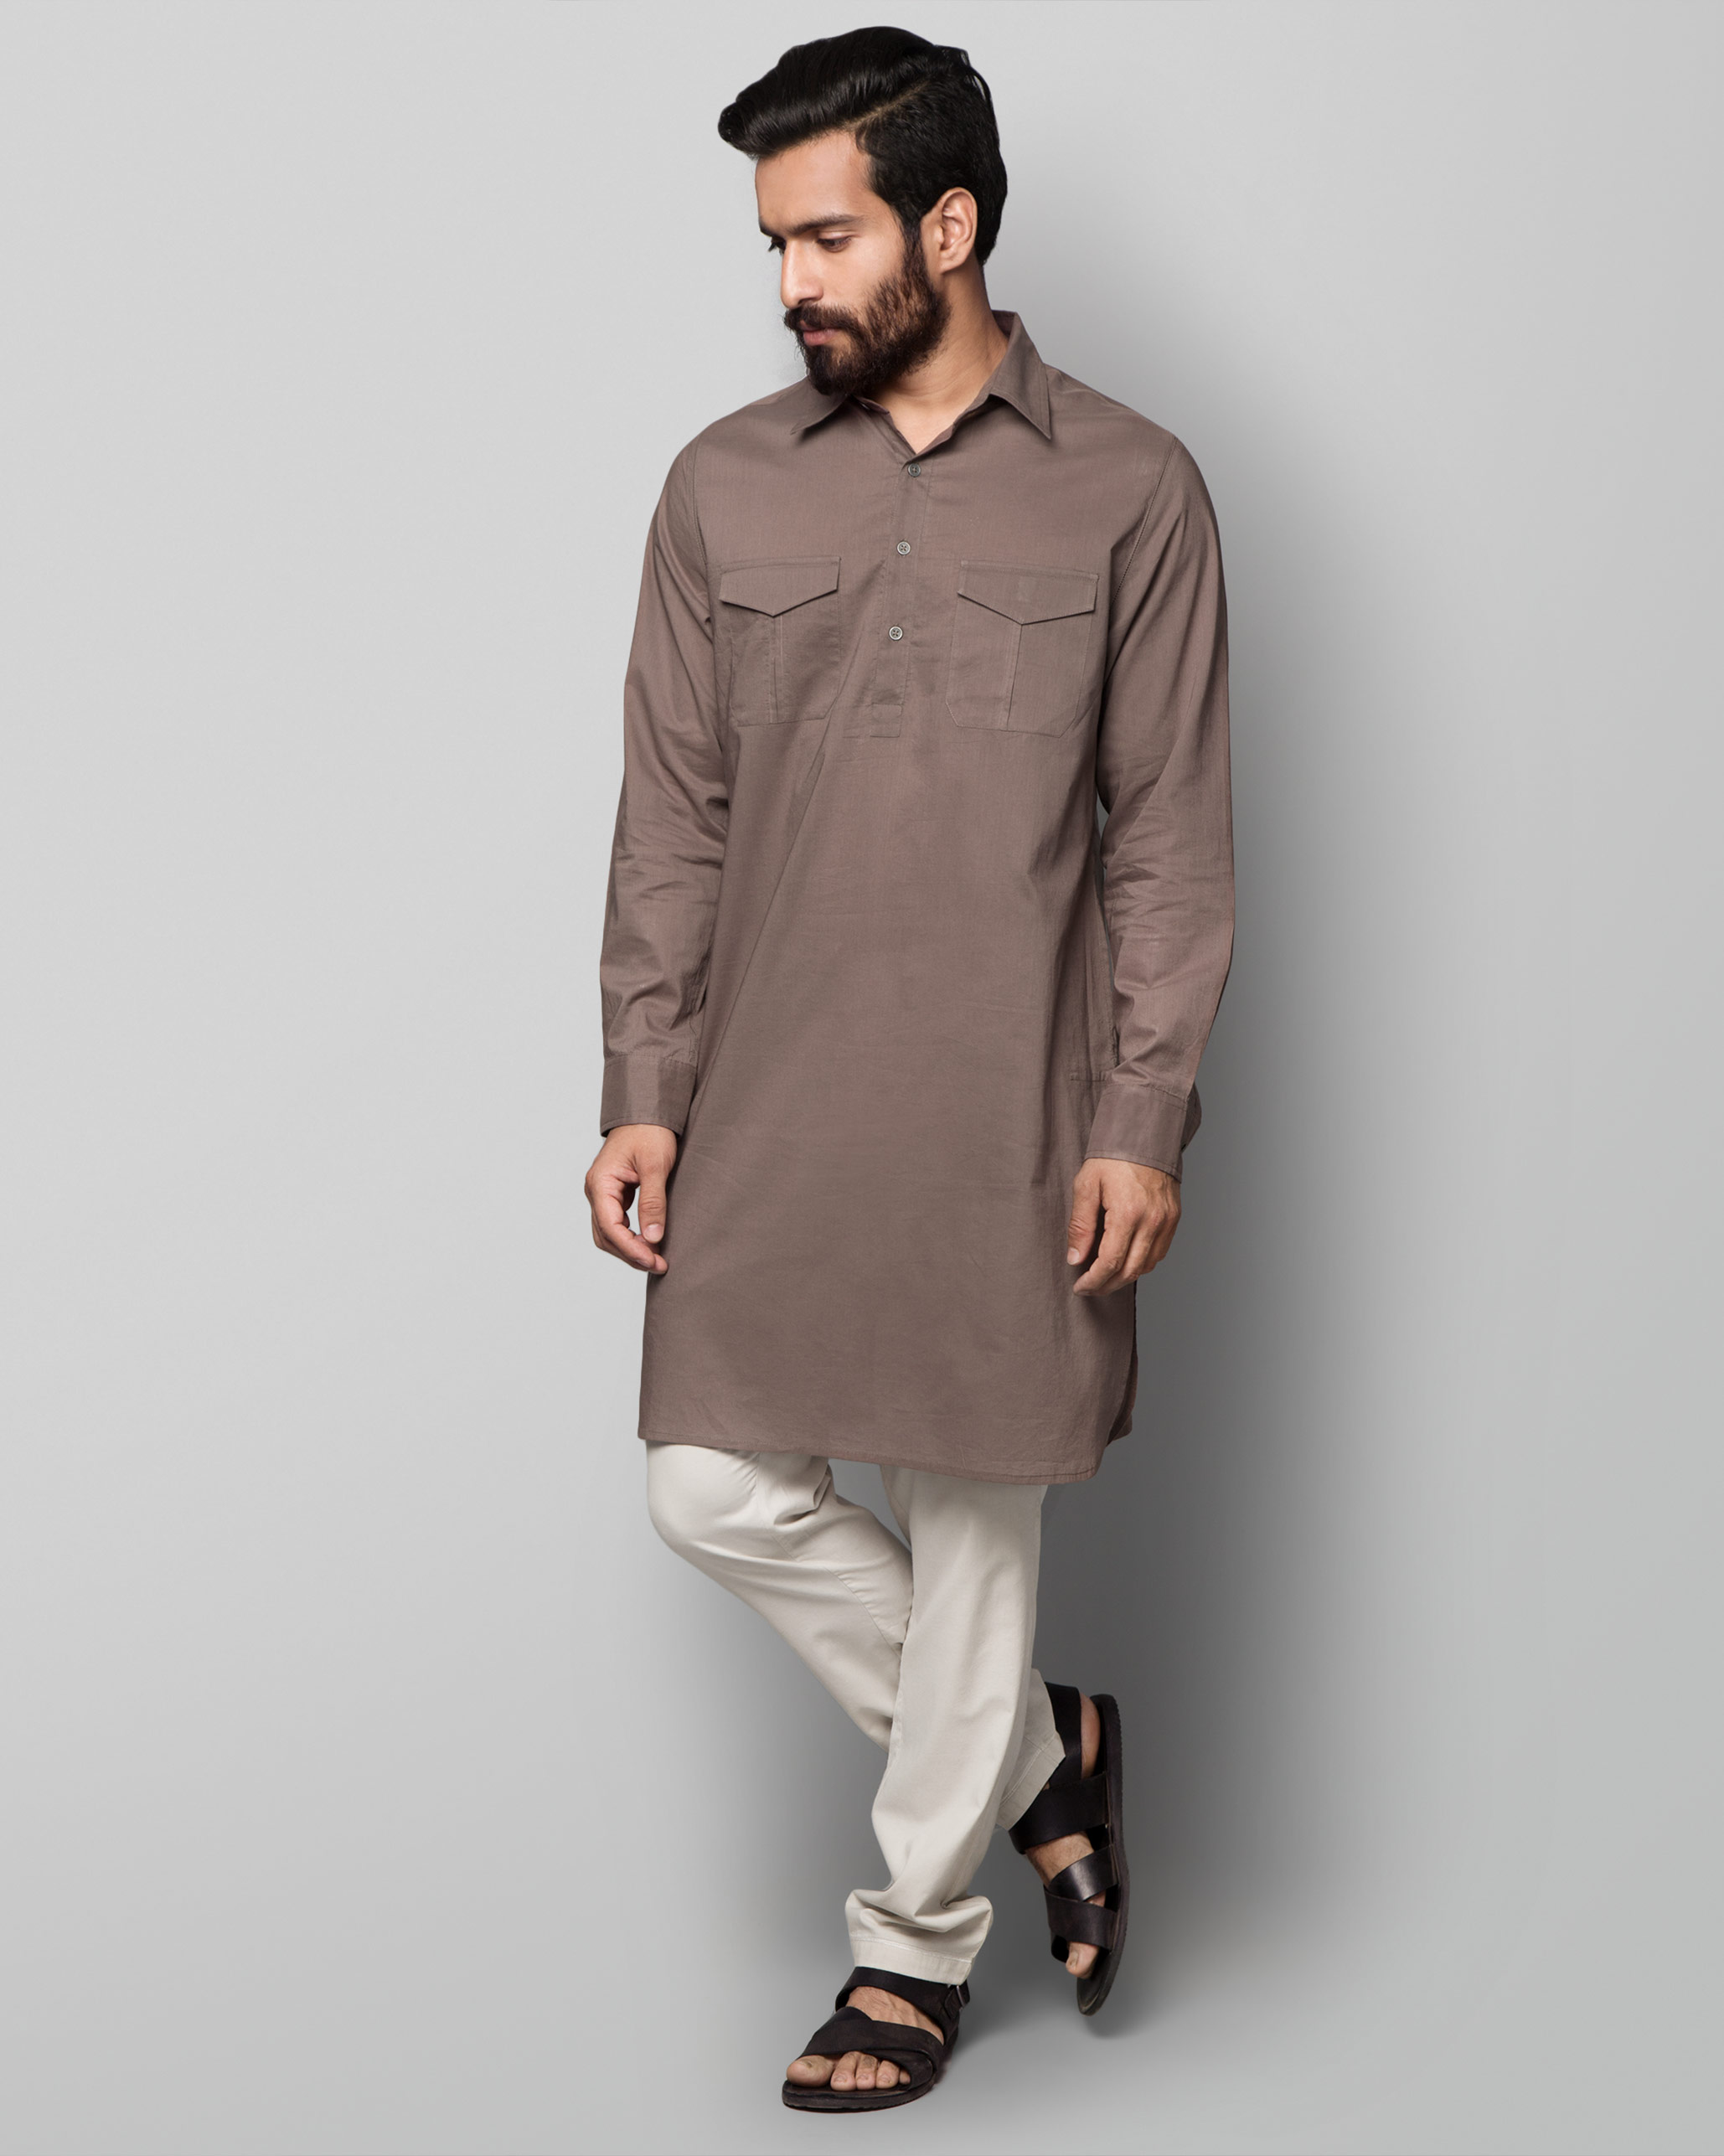 80e64fea55 Buy Nizamuddin Pathan Kurta - Brown: Kurtas & Jackets for Men Online |  Nicobar